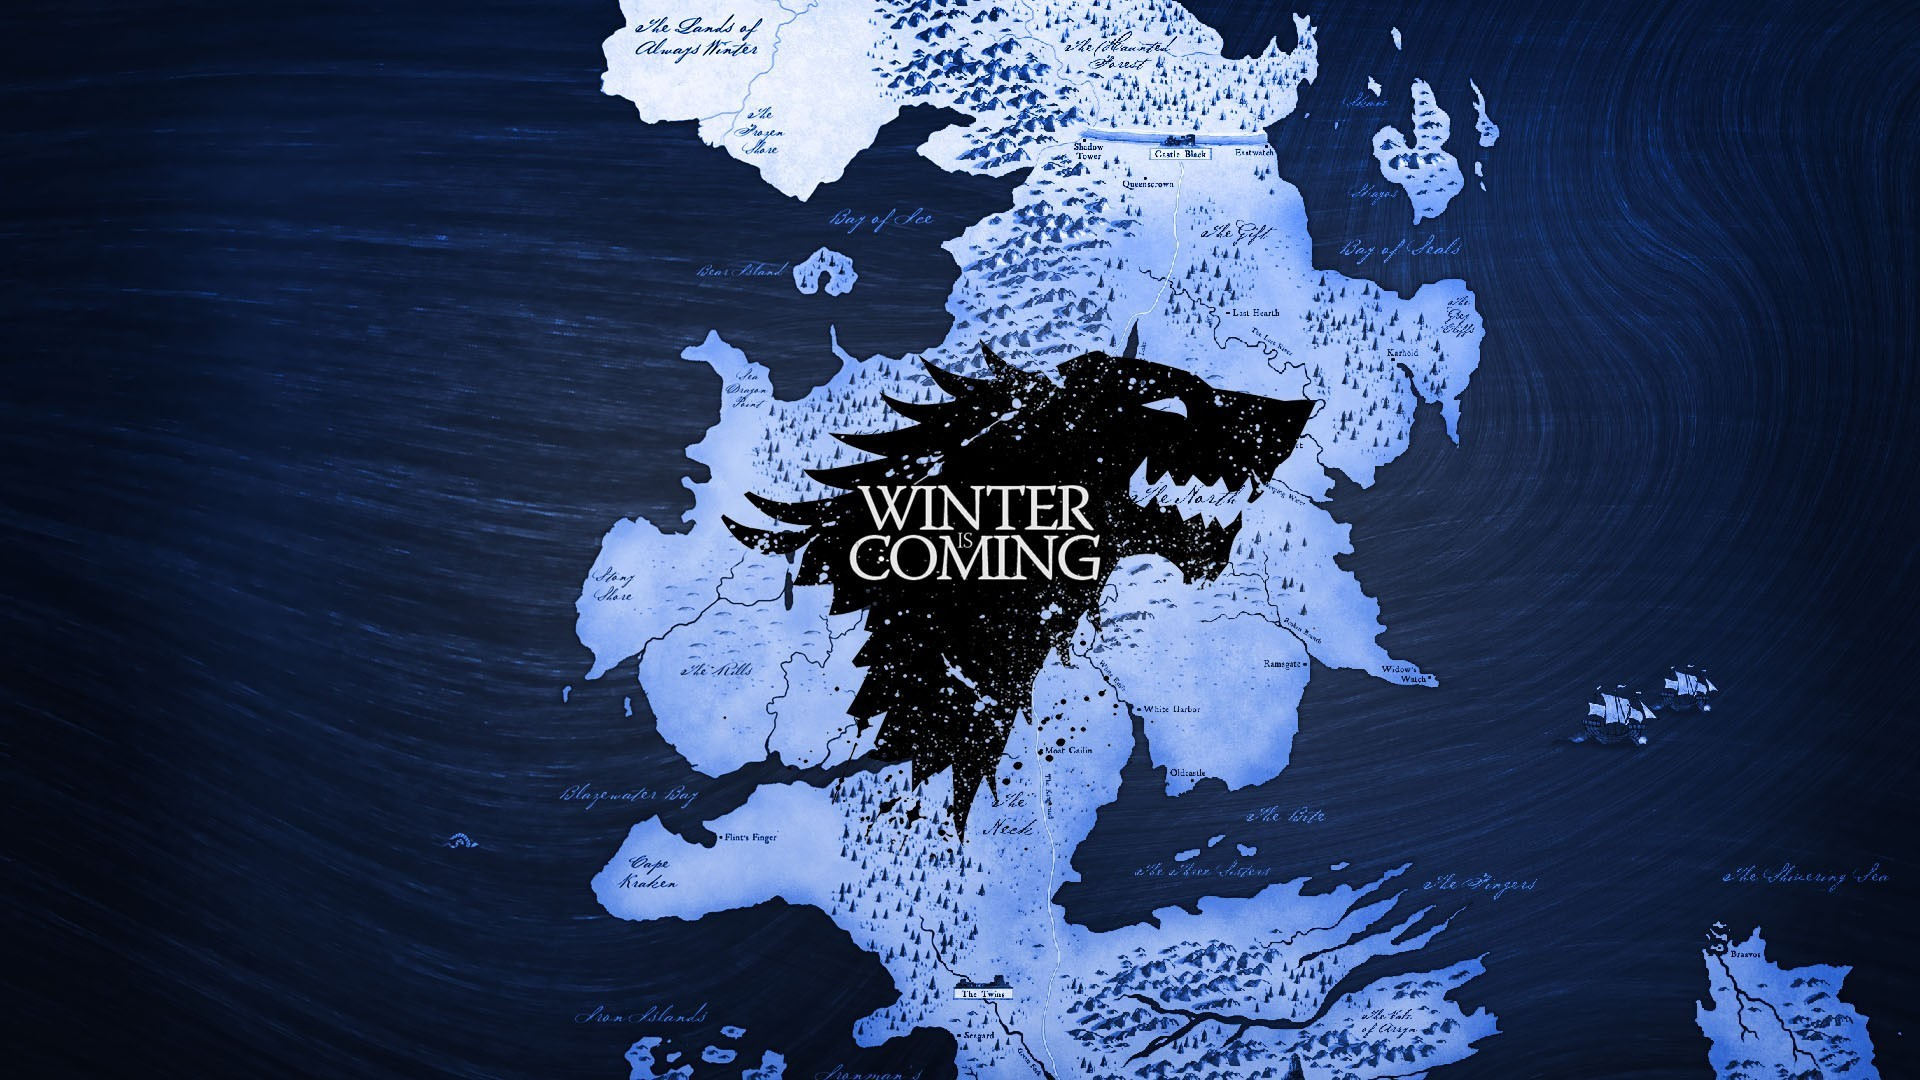 General Game of Thrones map Westeros Winterfell A Song of Ice and  Fire House Stark